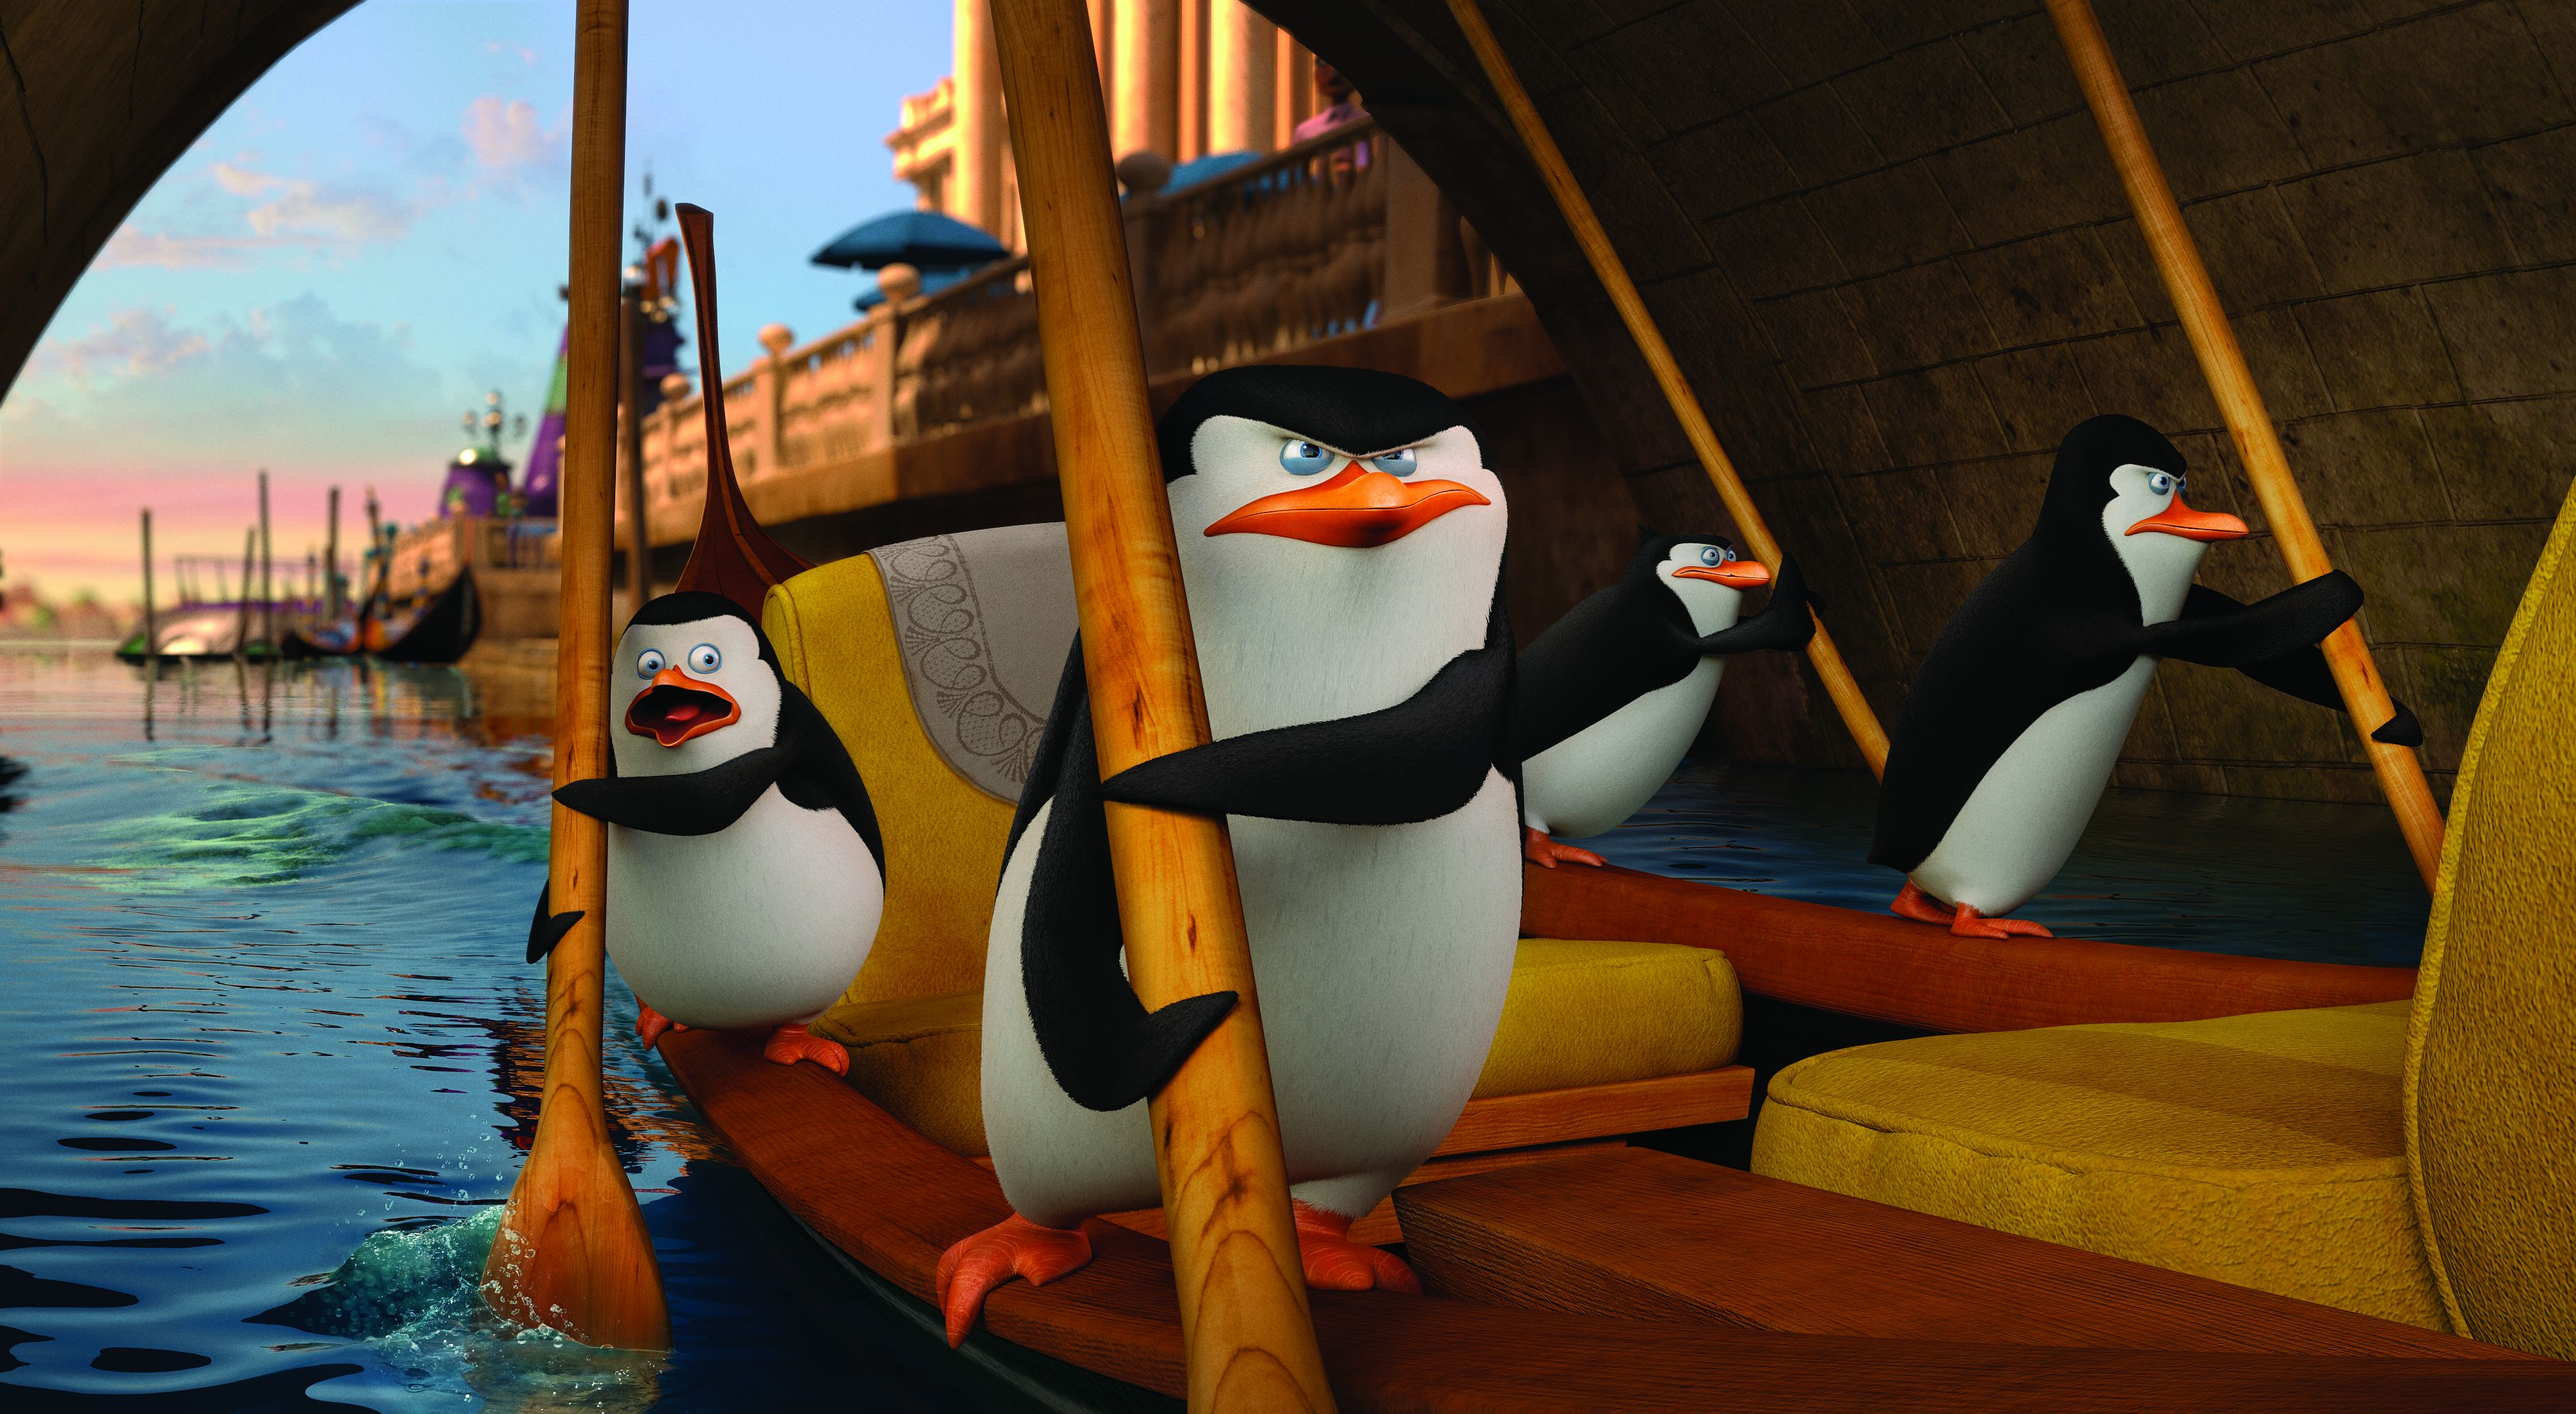 DVD-penguins-of-madagascar-rowing